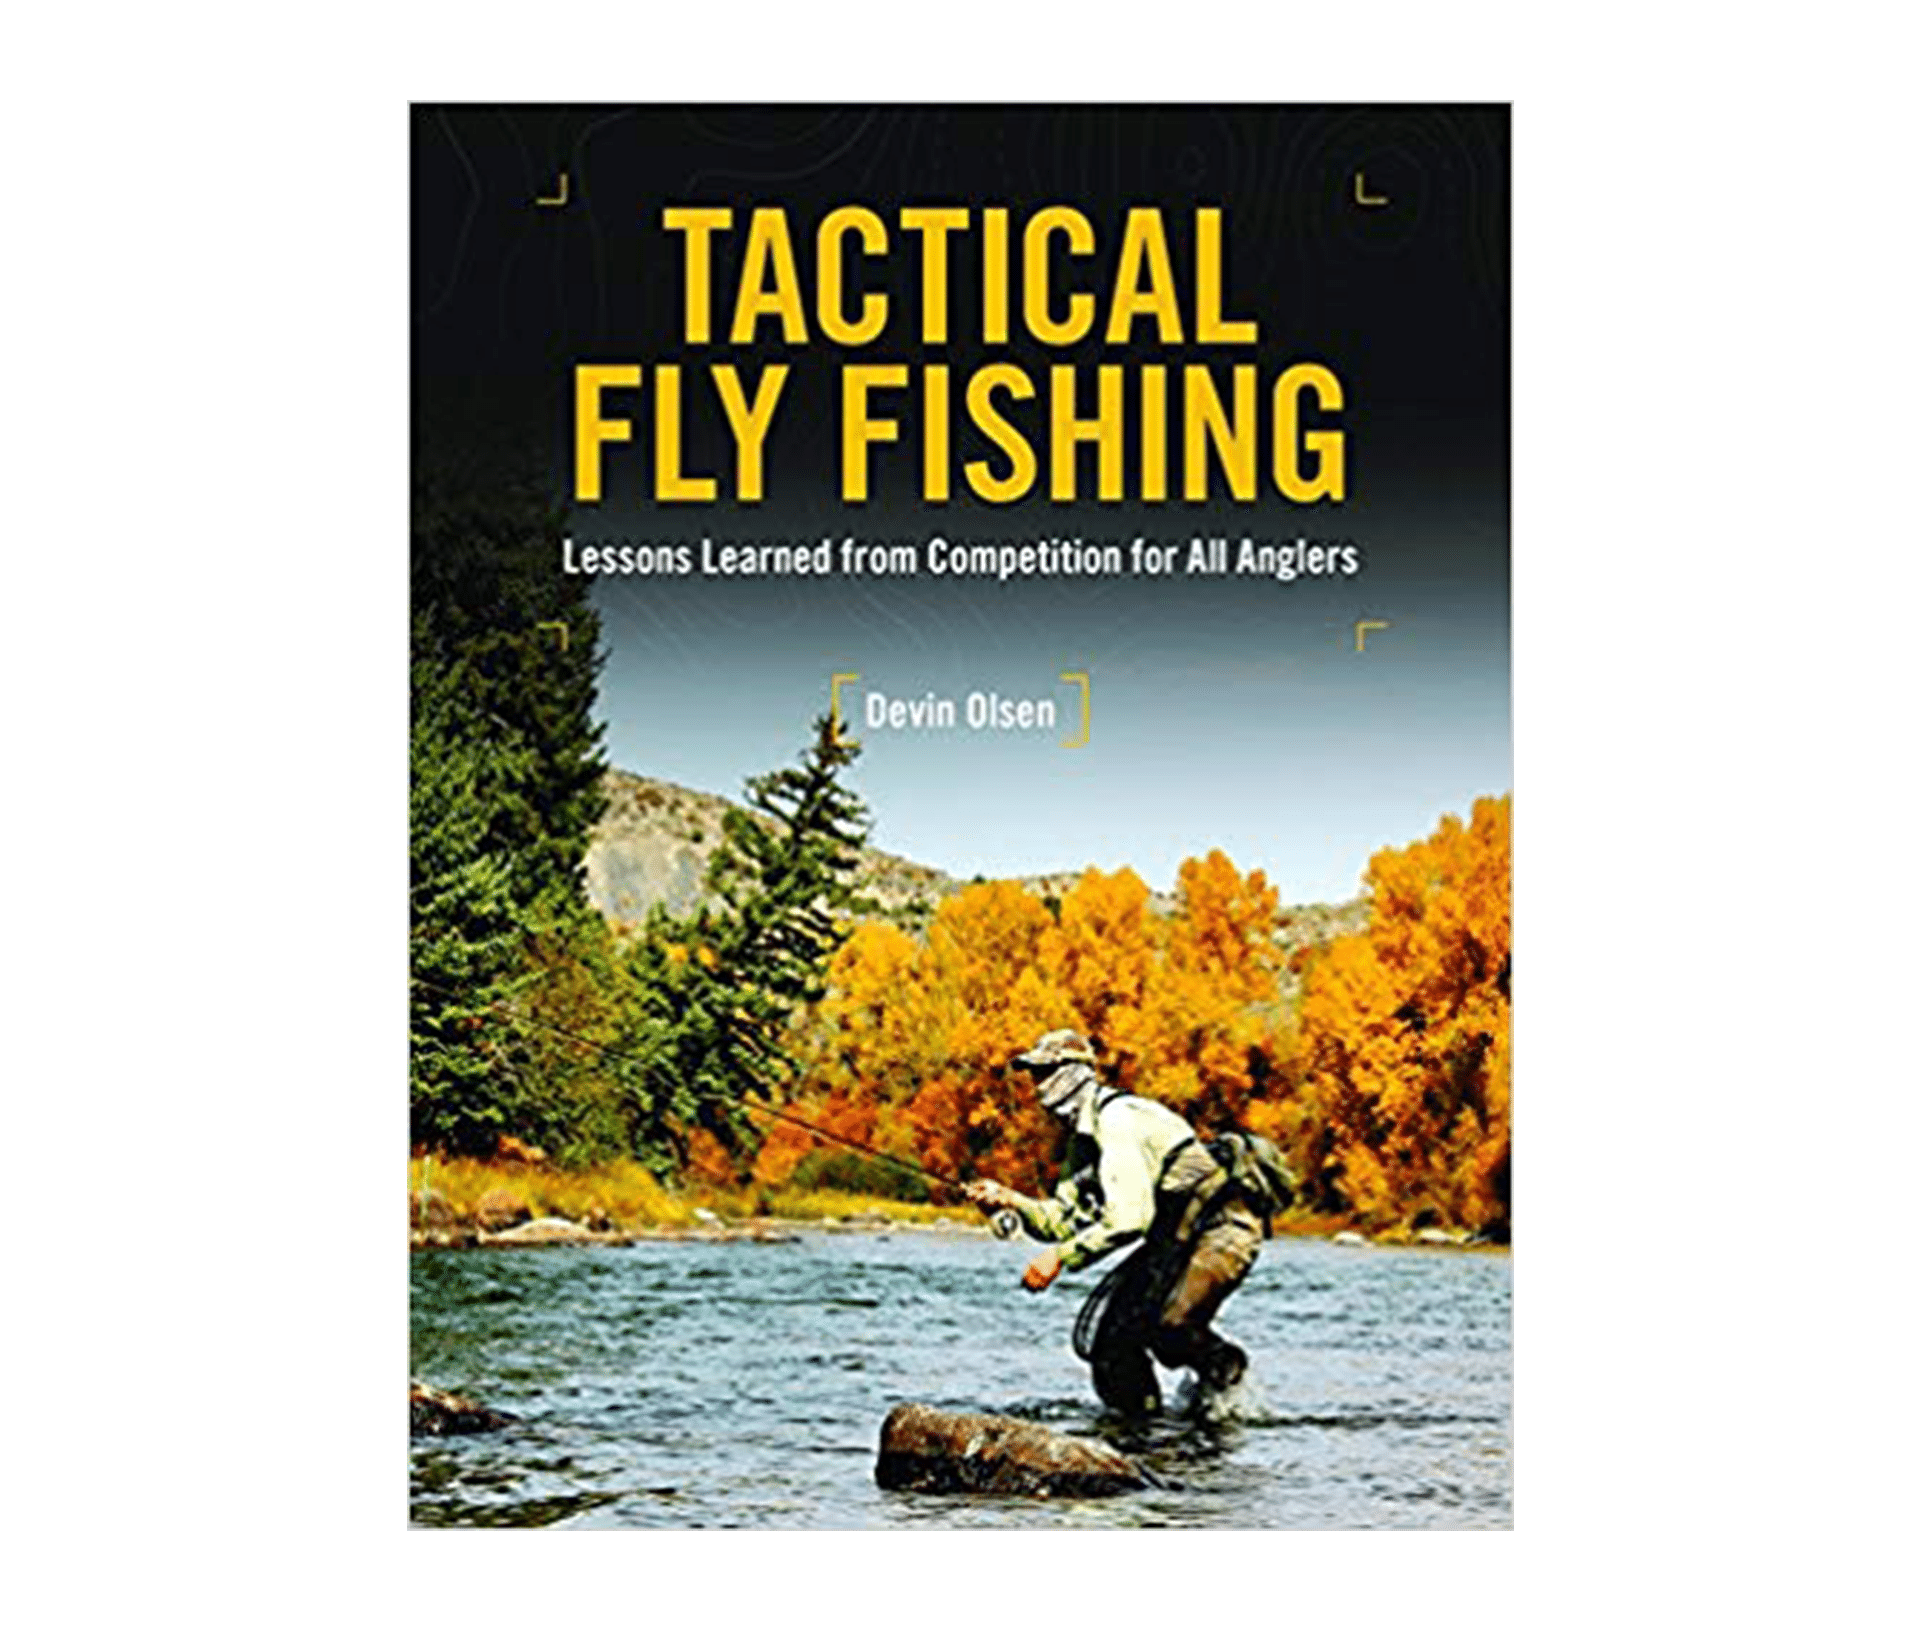 Tactical Fly-Fishing - Lessons Learned from Competition for All Anglers